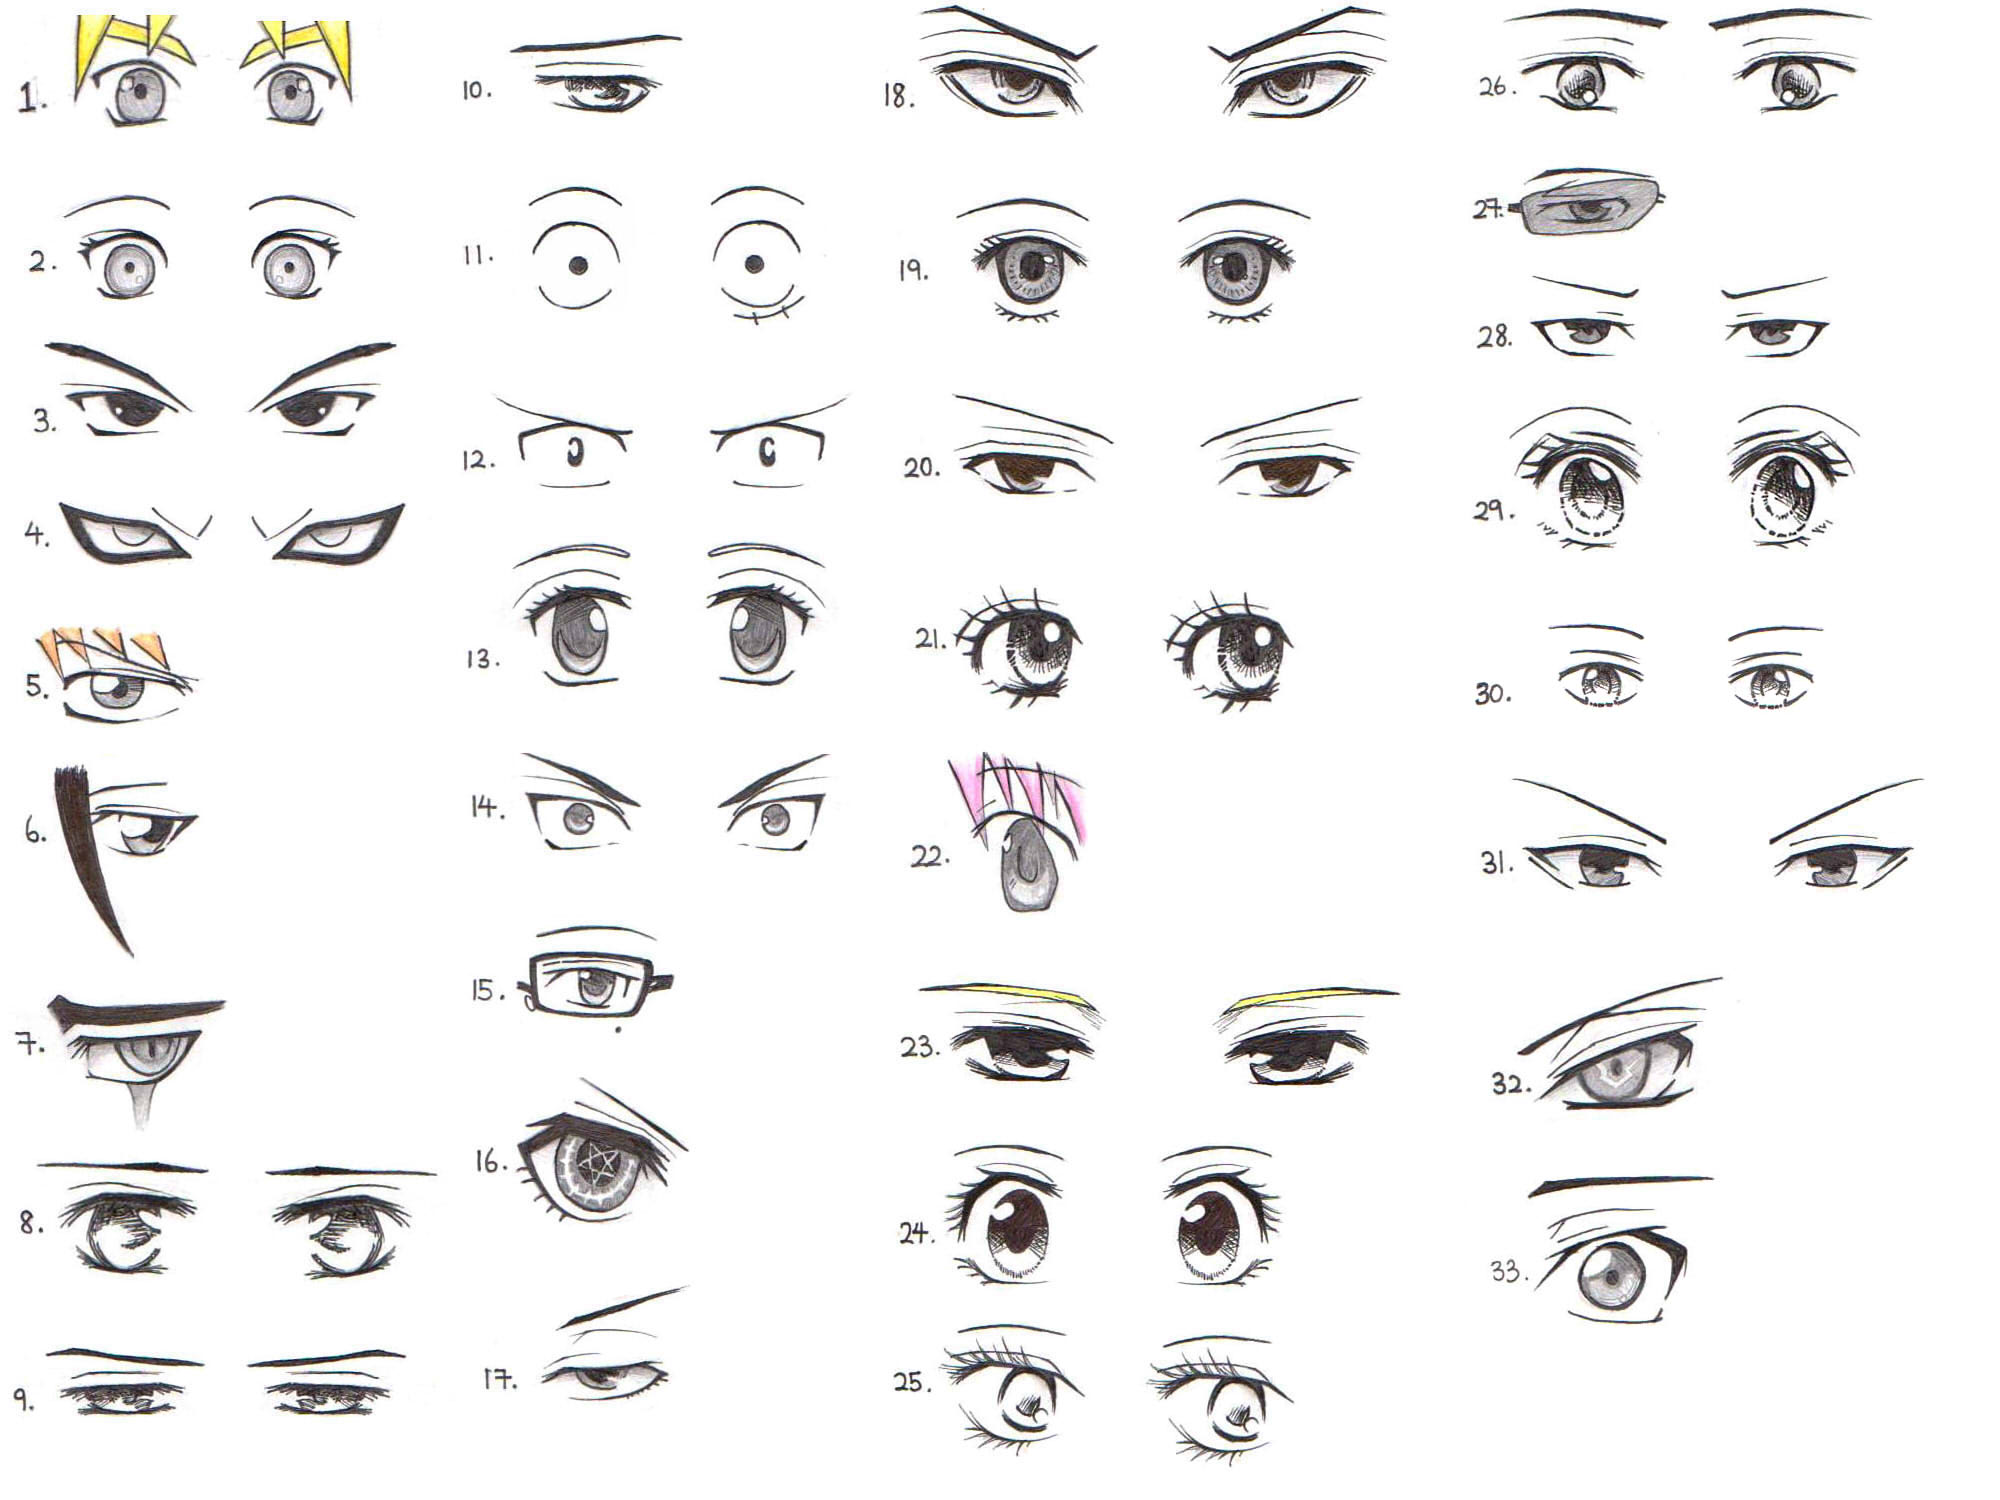 33 Manga And Anime Character Eye References